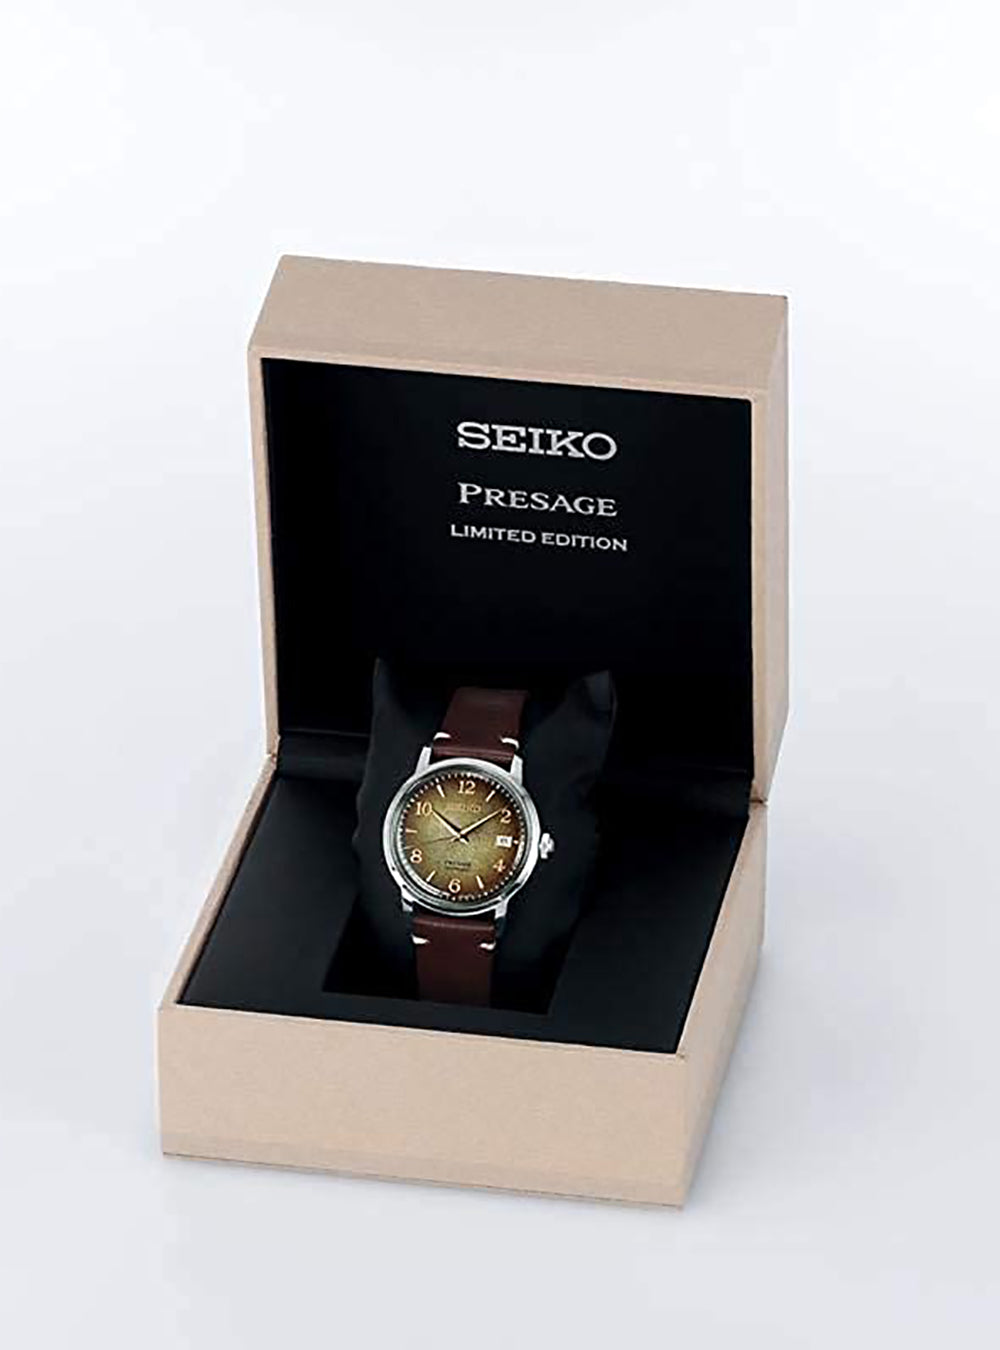 SEIKO PRESAGE MECHANICAL COCKTAIL TIME STAR BAR LIMITED EDITION SARY183 MADE IN JAPAN JDM